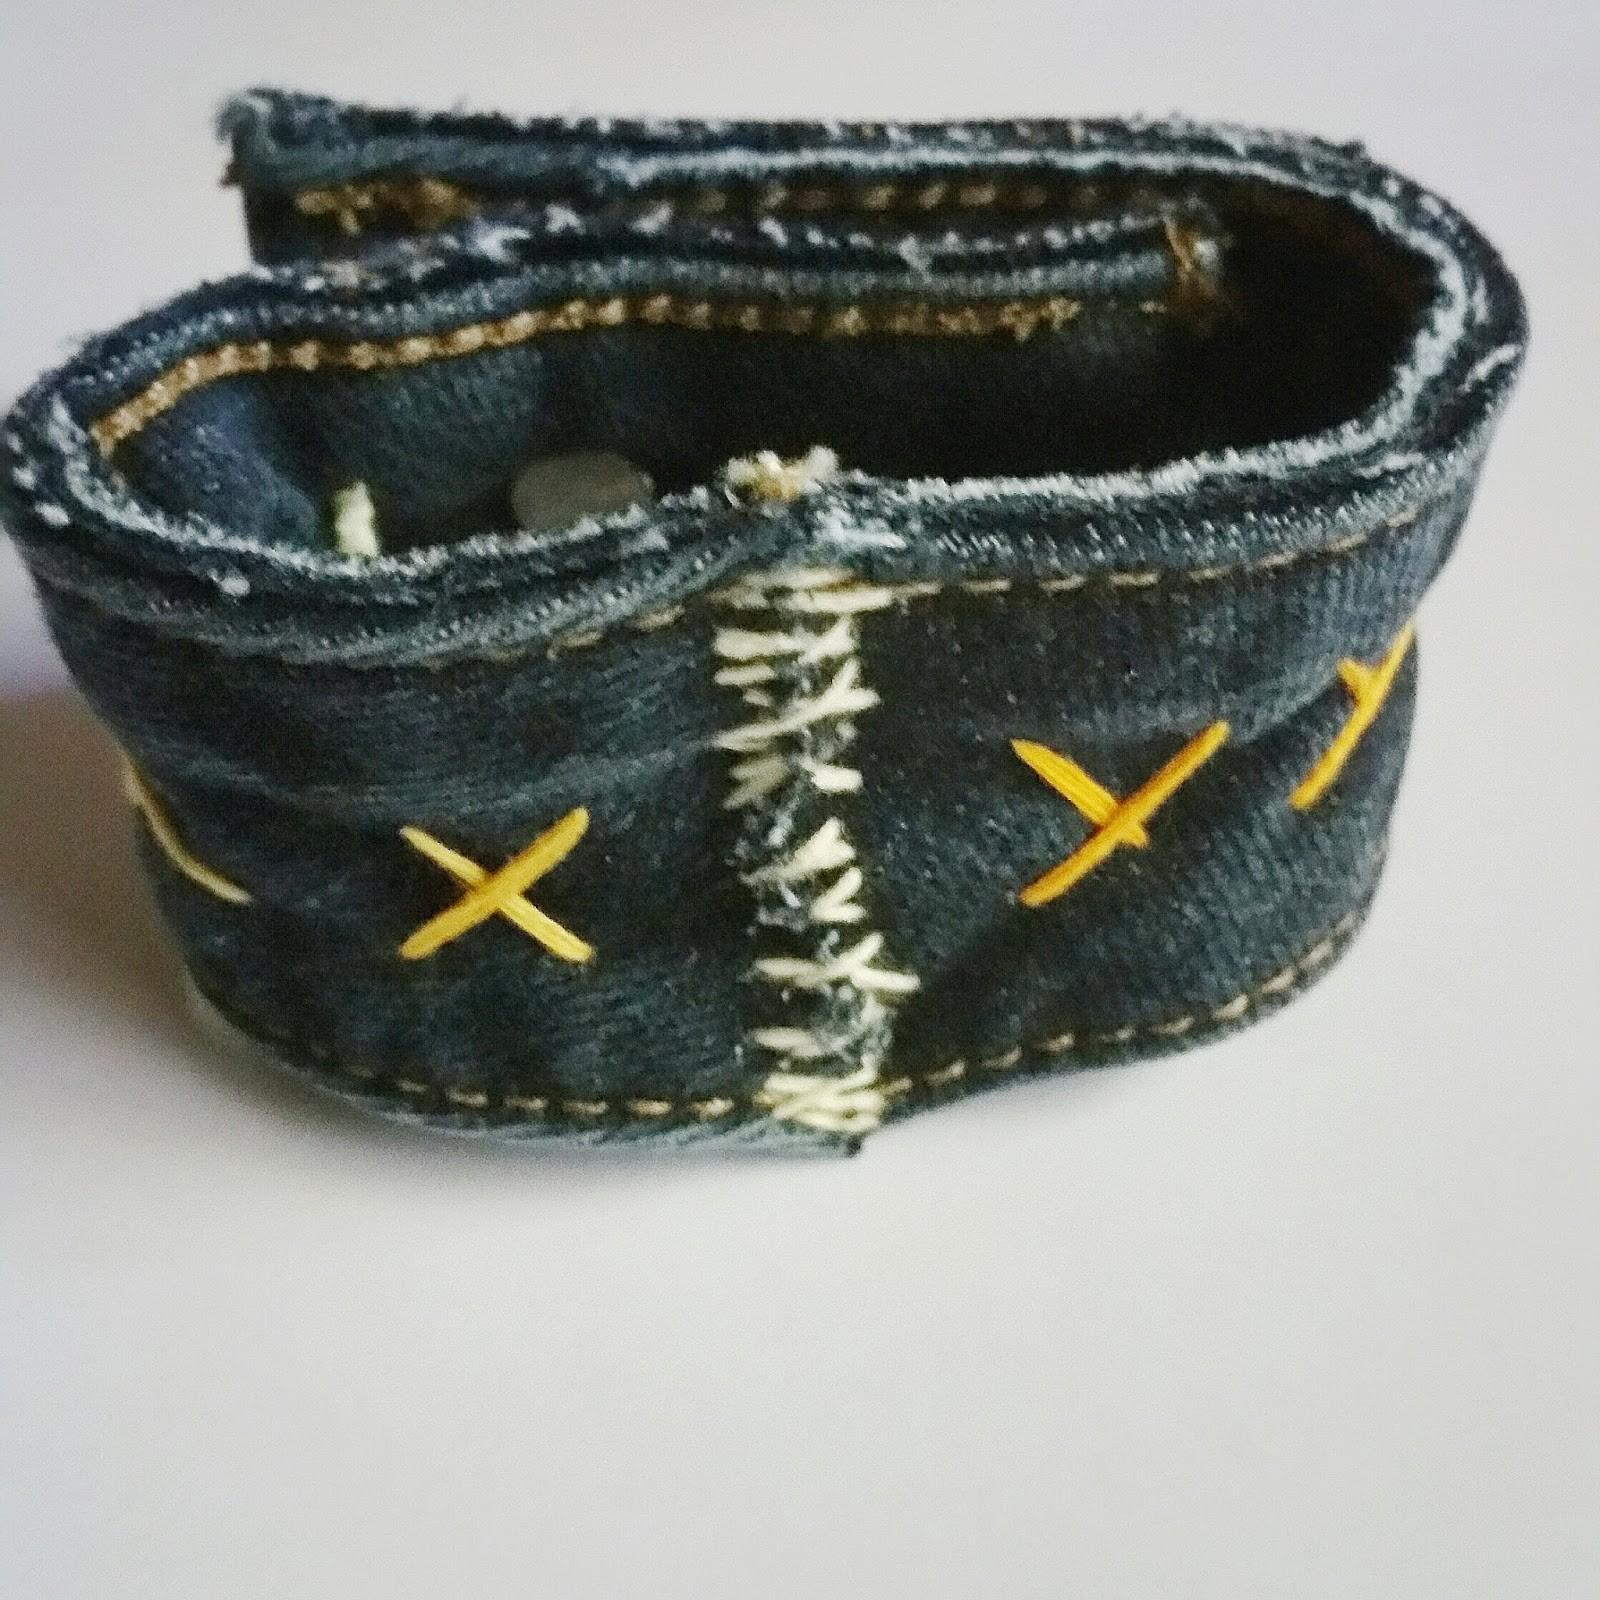 Diy Mom Upcycled Funky Denim Cuff Bracelet Idea